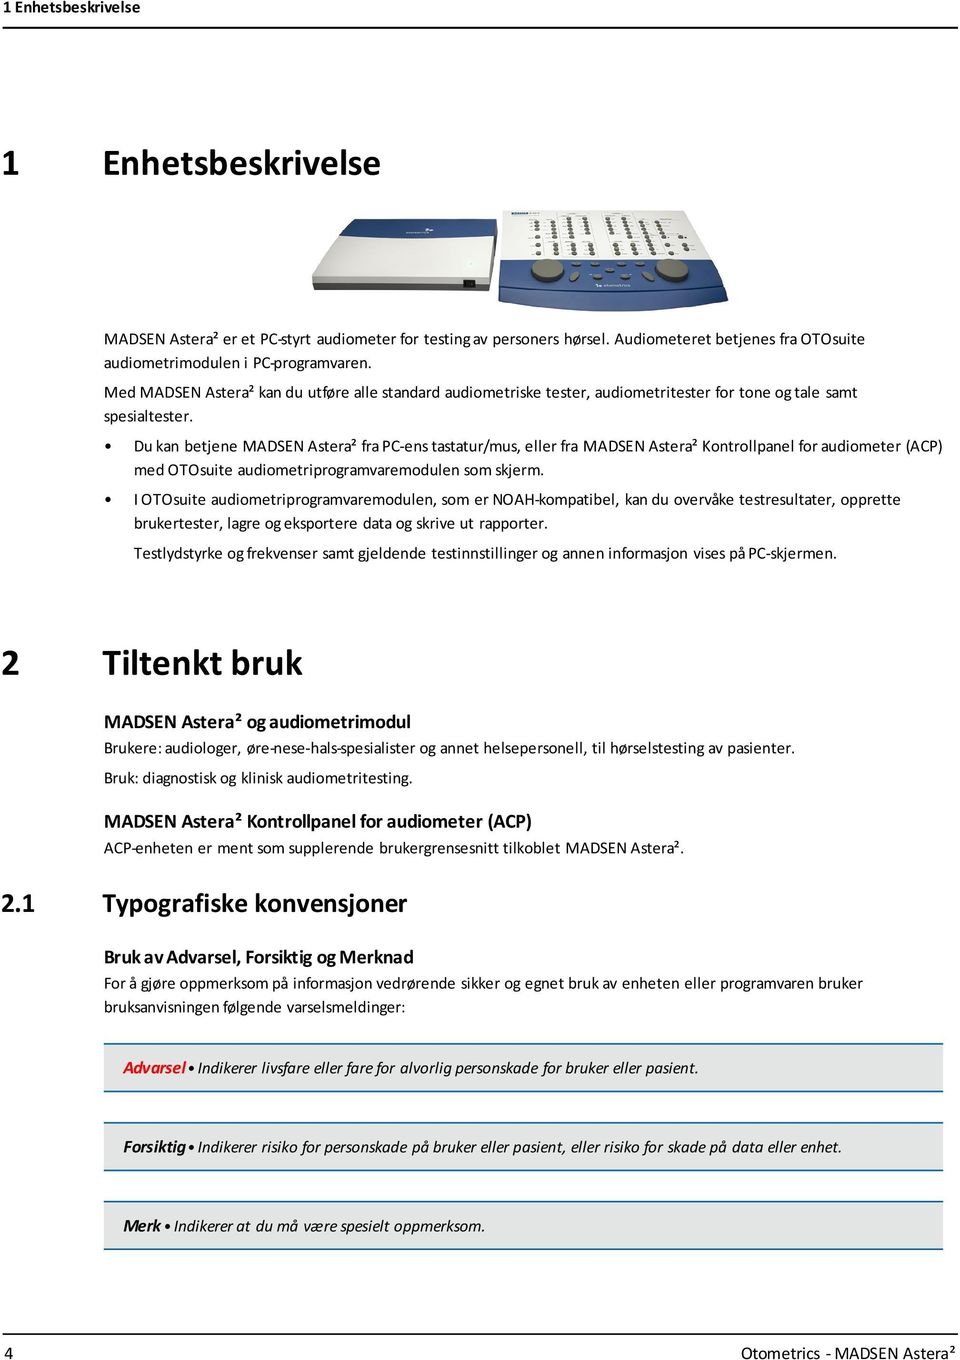 Du kan betjene MADSEN Astera² fra PC-ens tastatur/mus, eller fra MADSEN Astera² Kontrollpanel for audiometer (ACP) med OTOsuite audiometriprogramvaremodulen som skjerm.